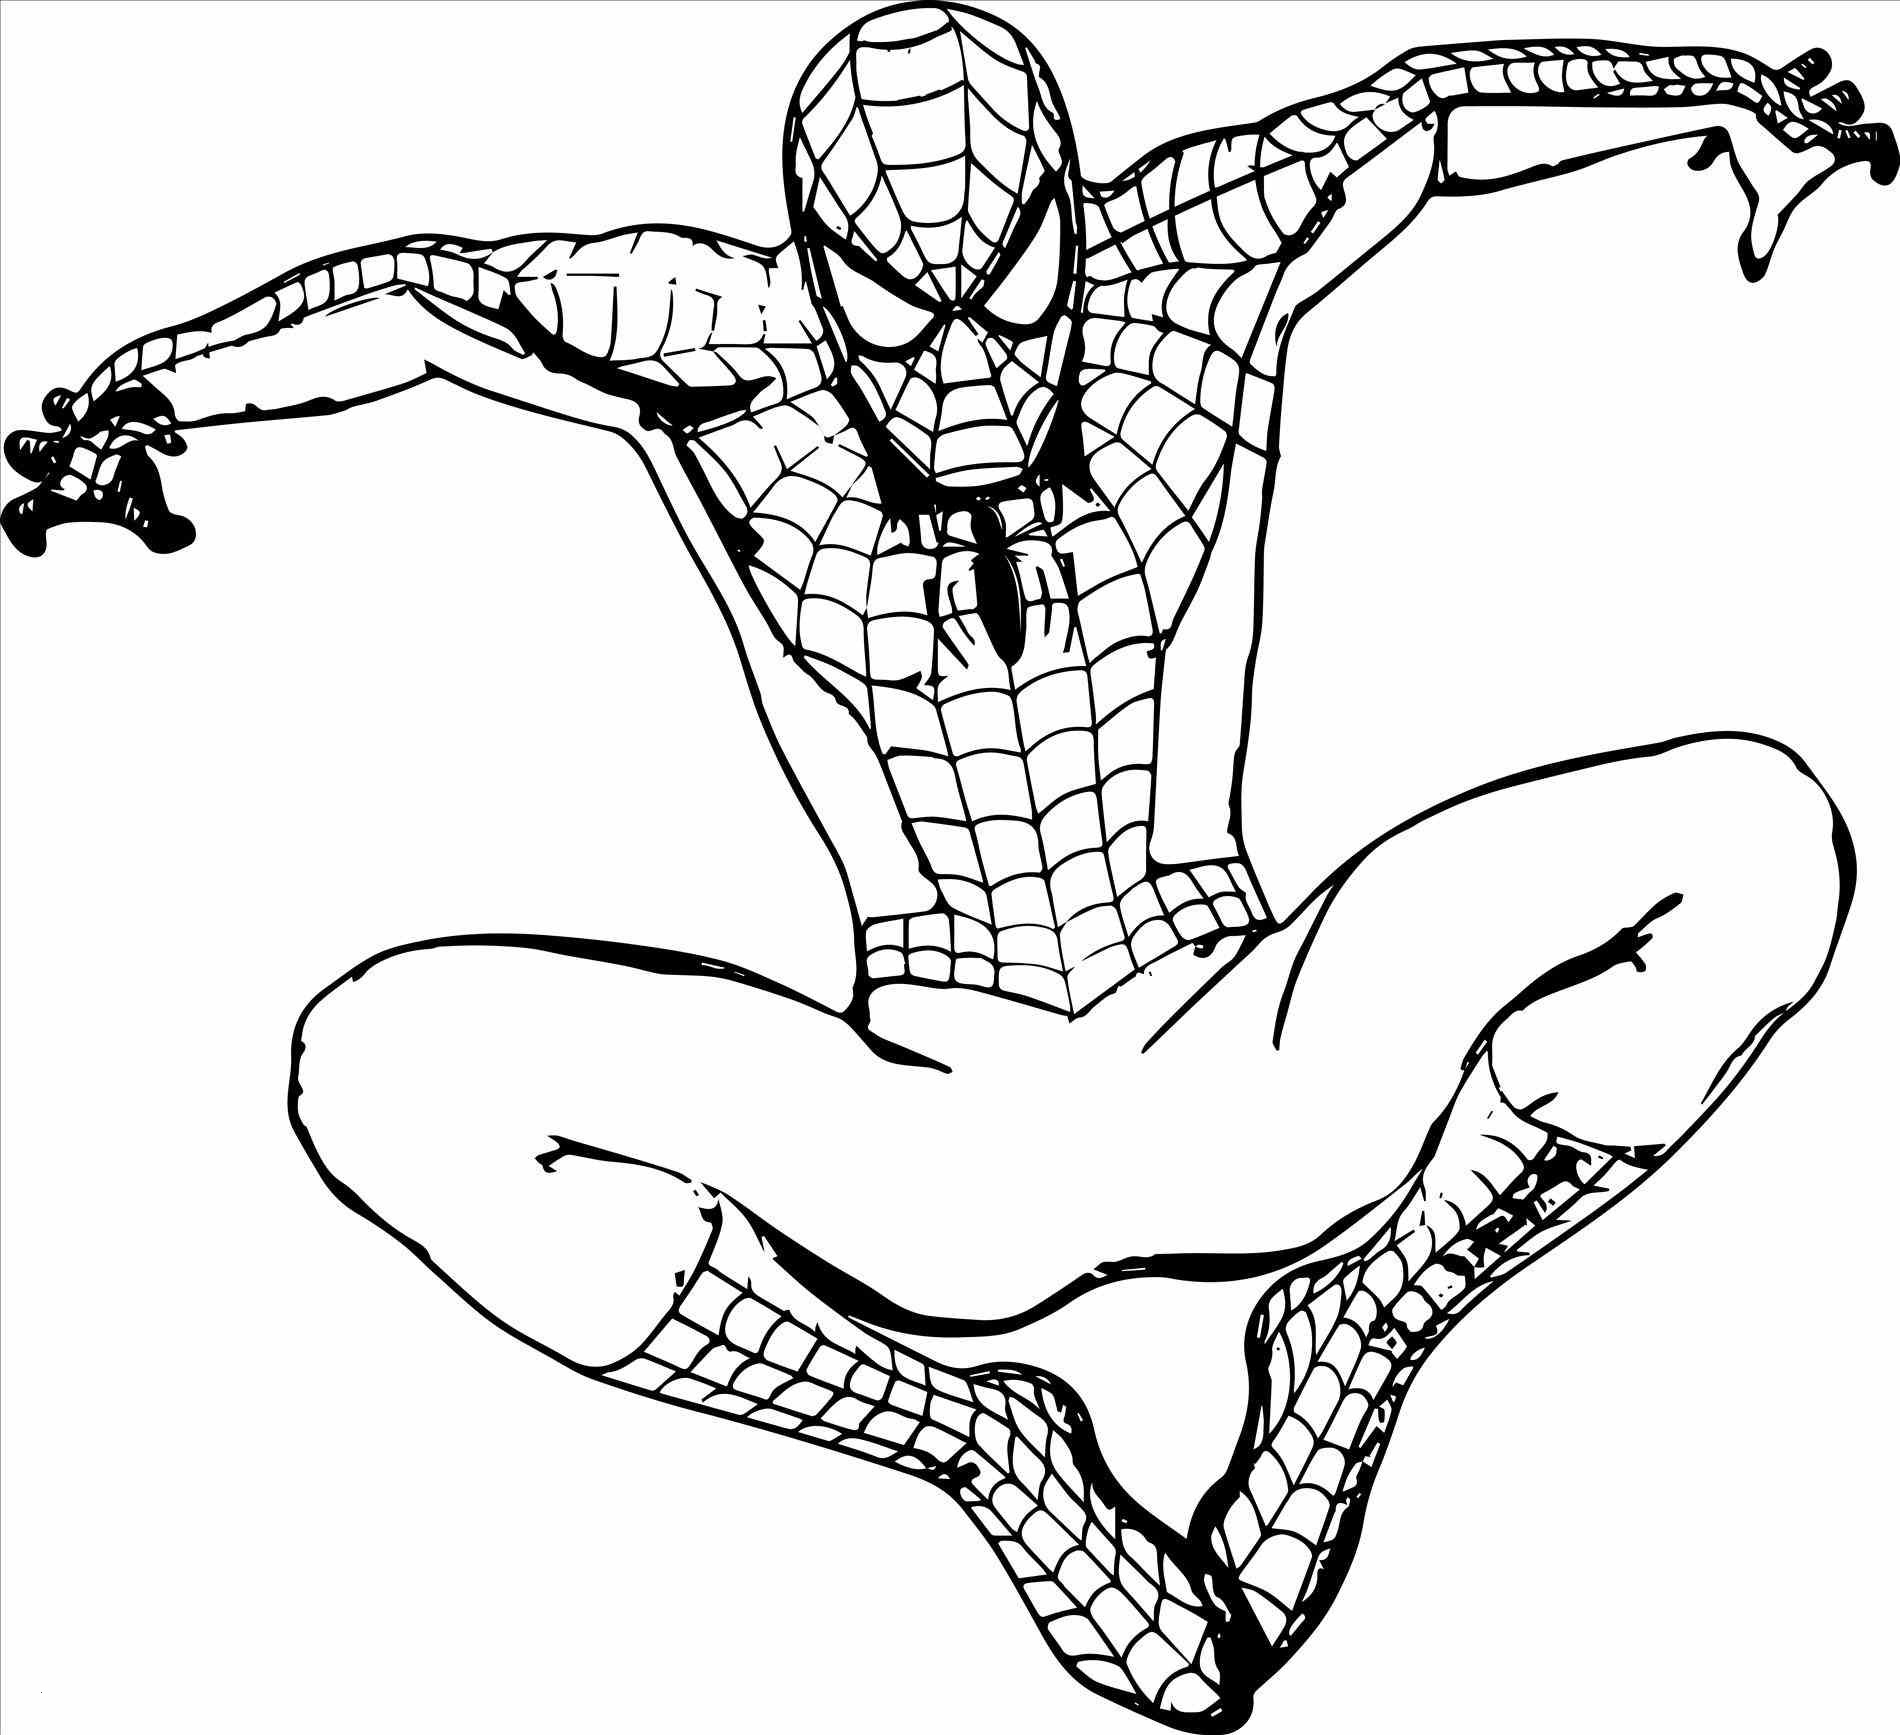 21 Lego Spiderman Coloring Pages Collection Coloring Sheets